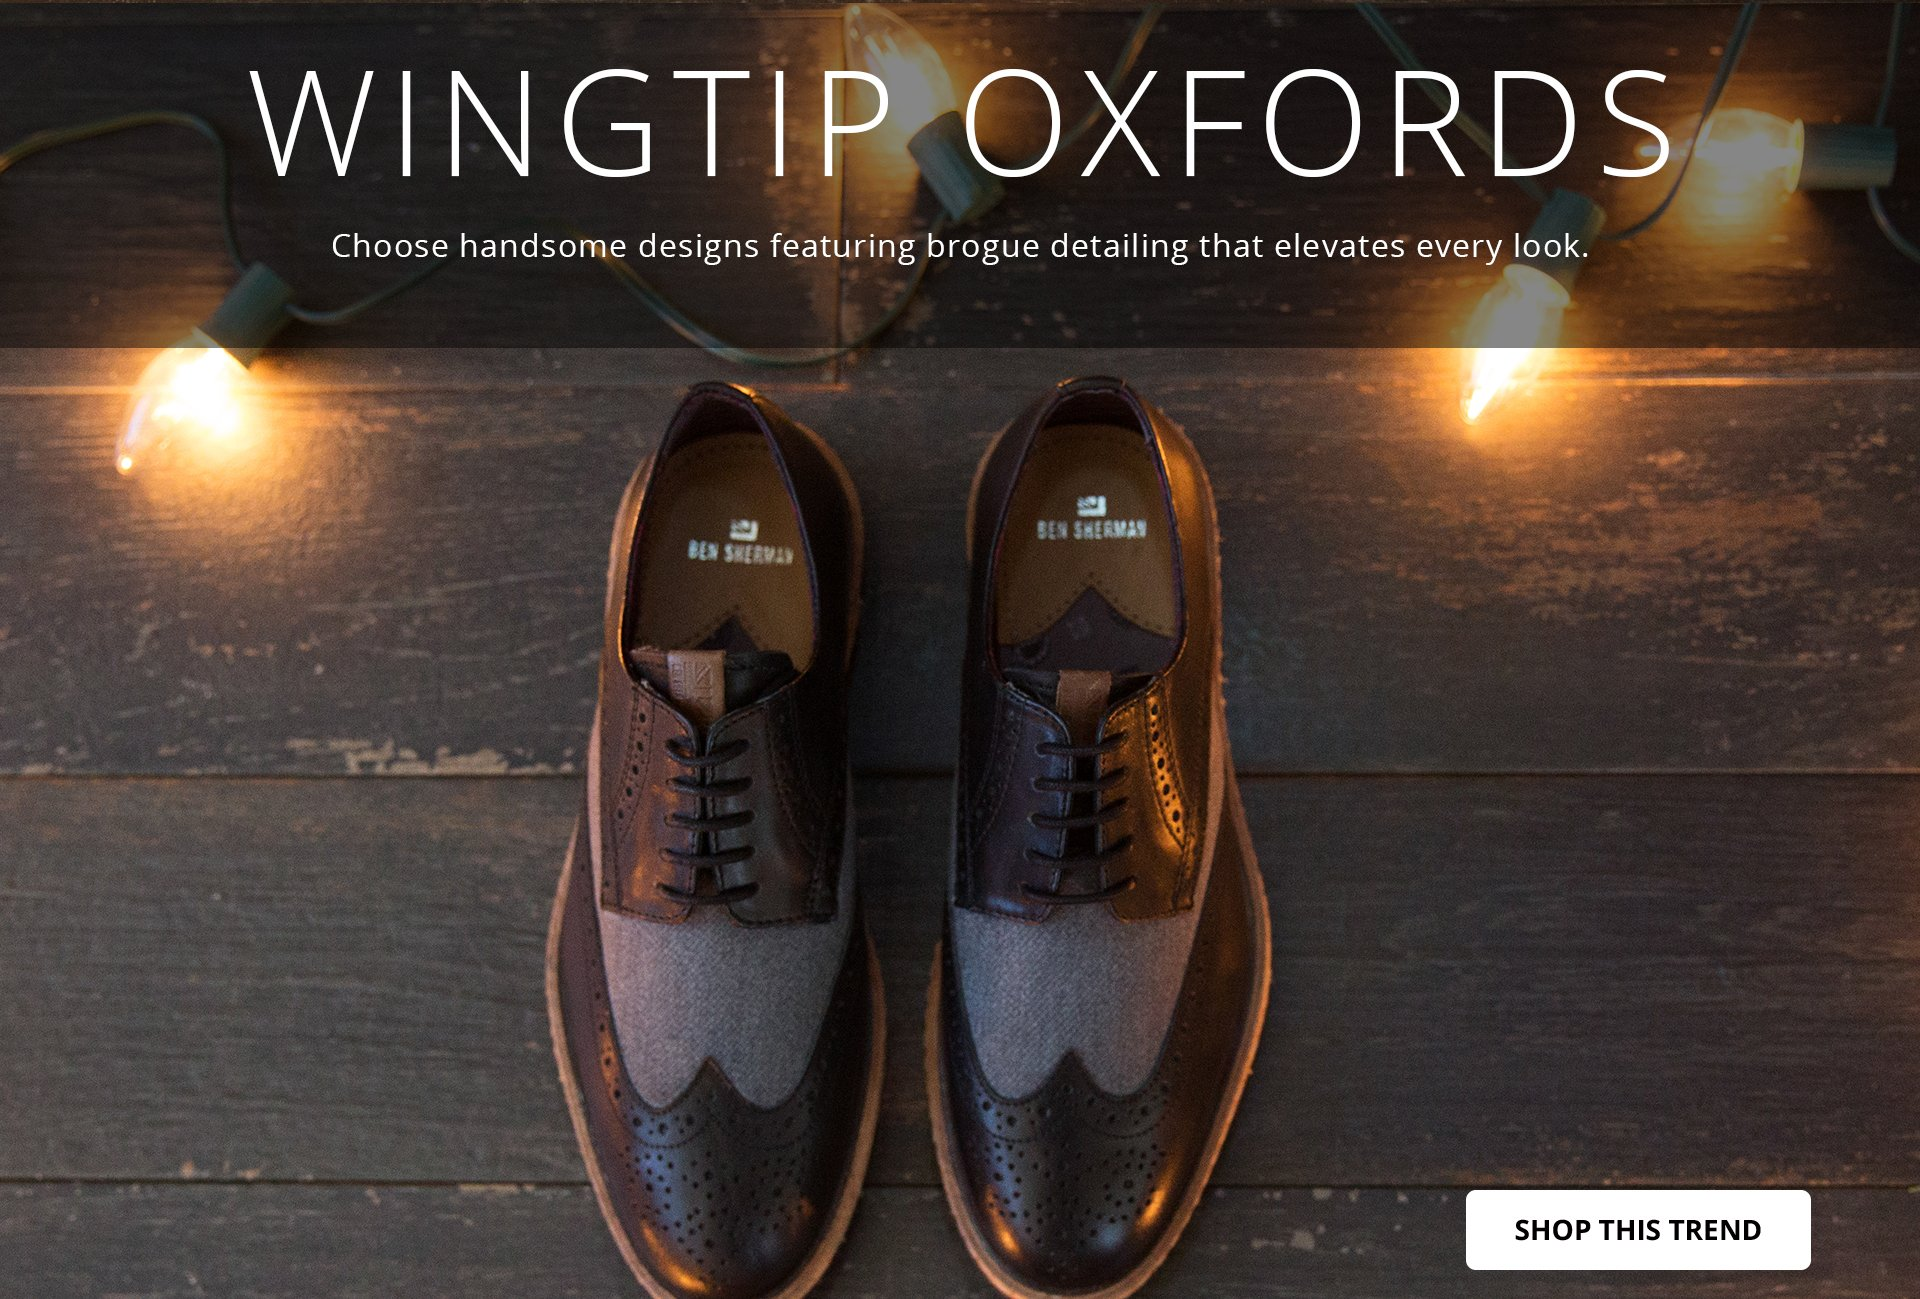 WINGTIP OXFORDS: Choose handsome designs featuring brogue detailing that elevates every look. SHOP THIS TREND